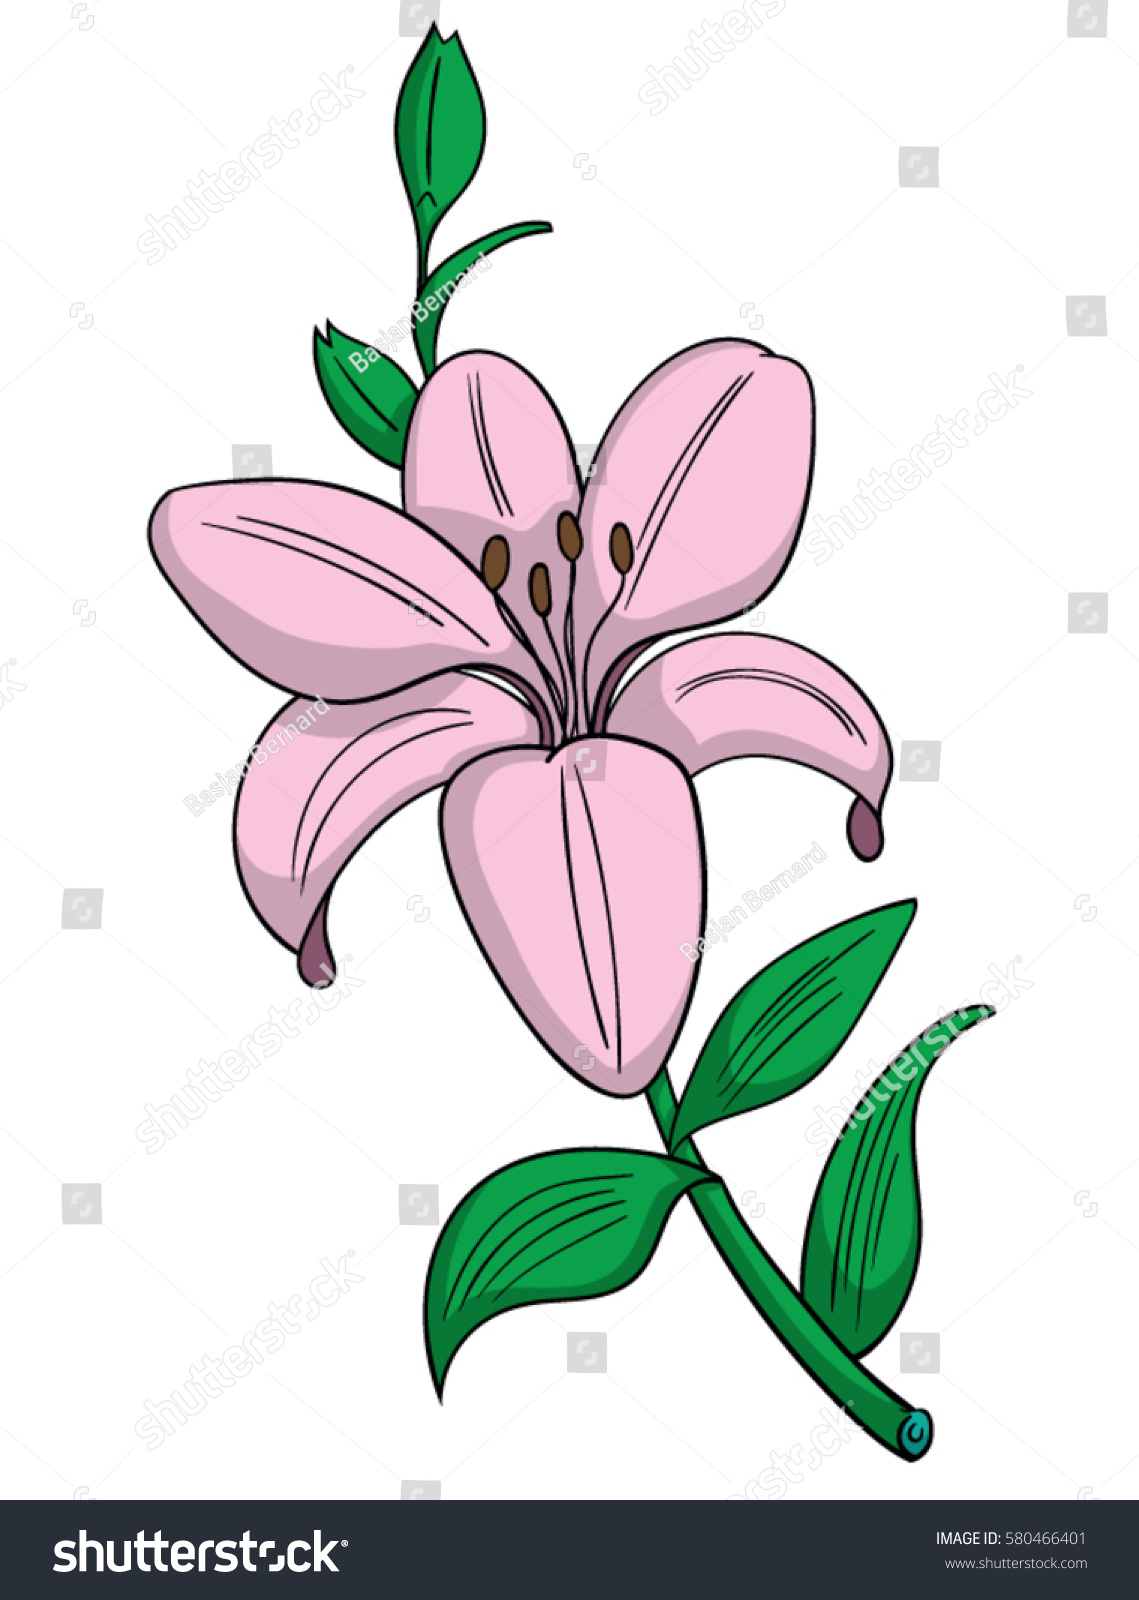 Cartoon style pink lily flower stock vektorgrafik 580466401 cartoon style pink lily flower izmirmasajfo